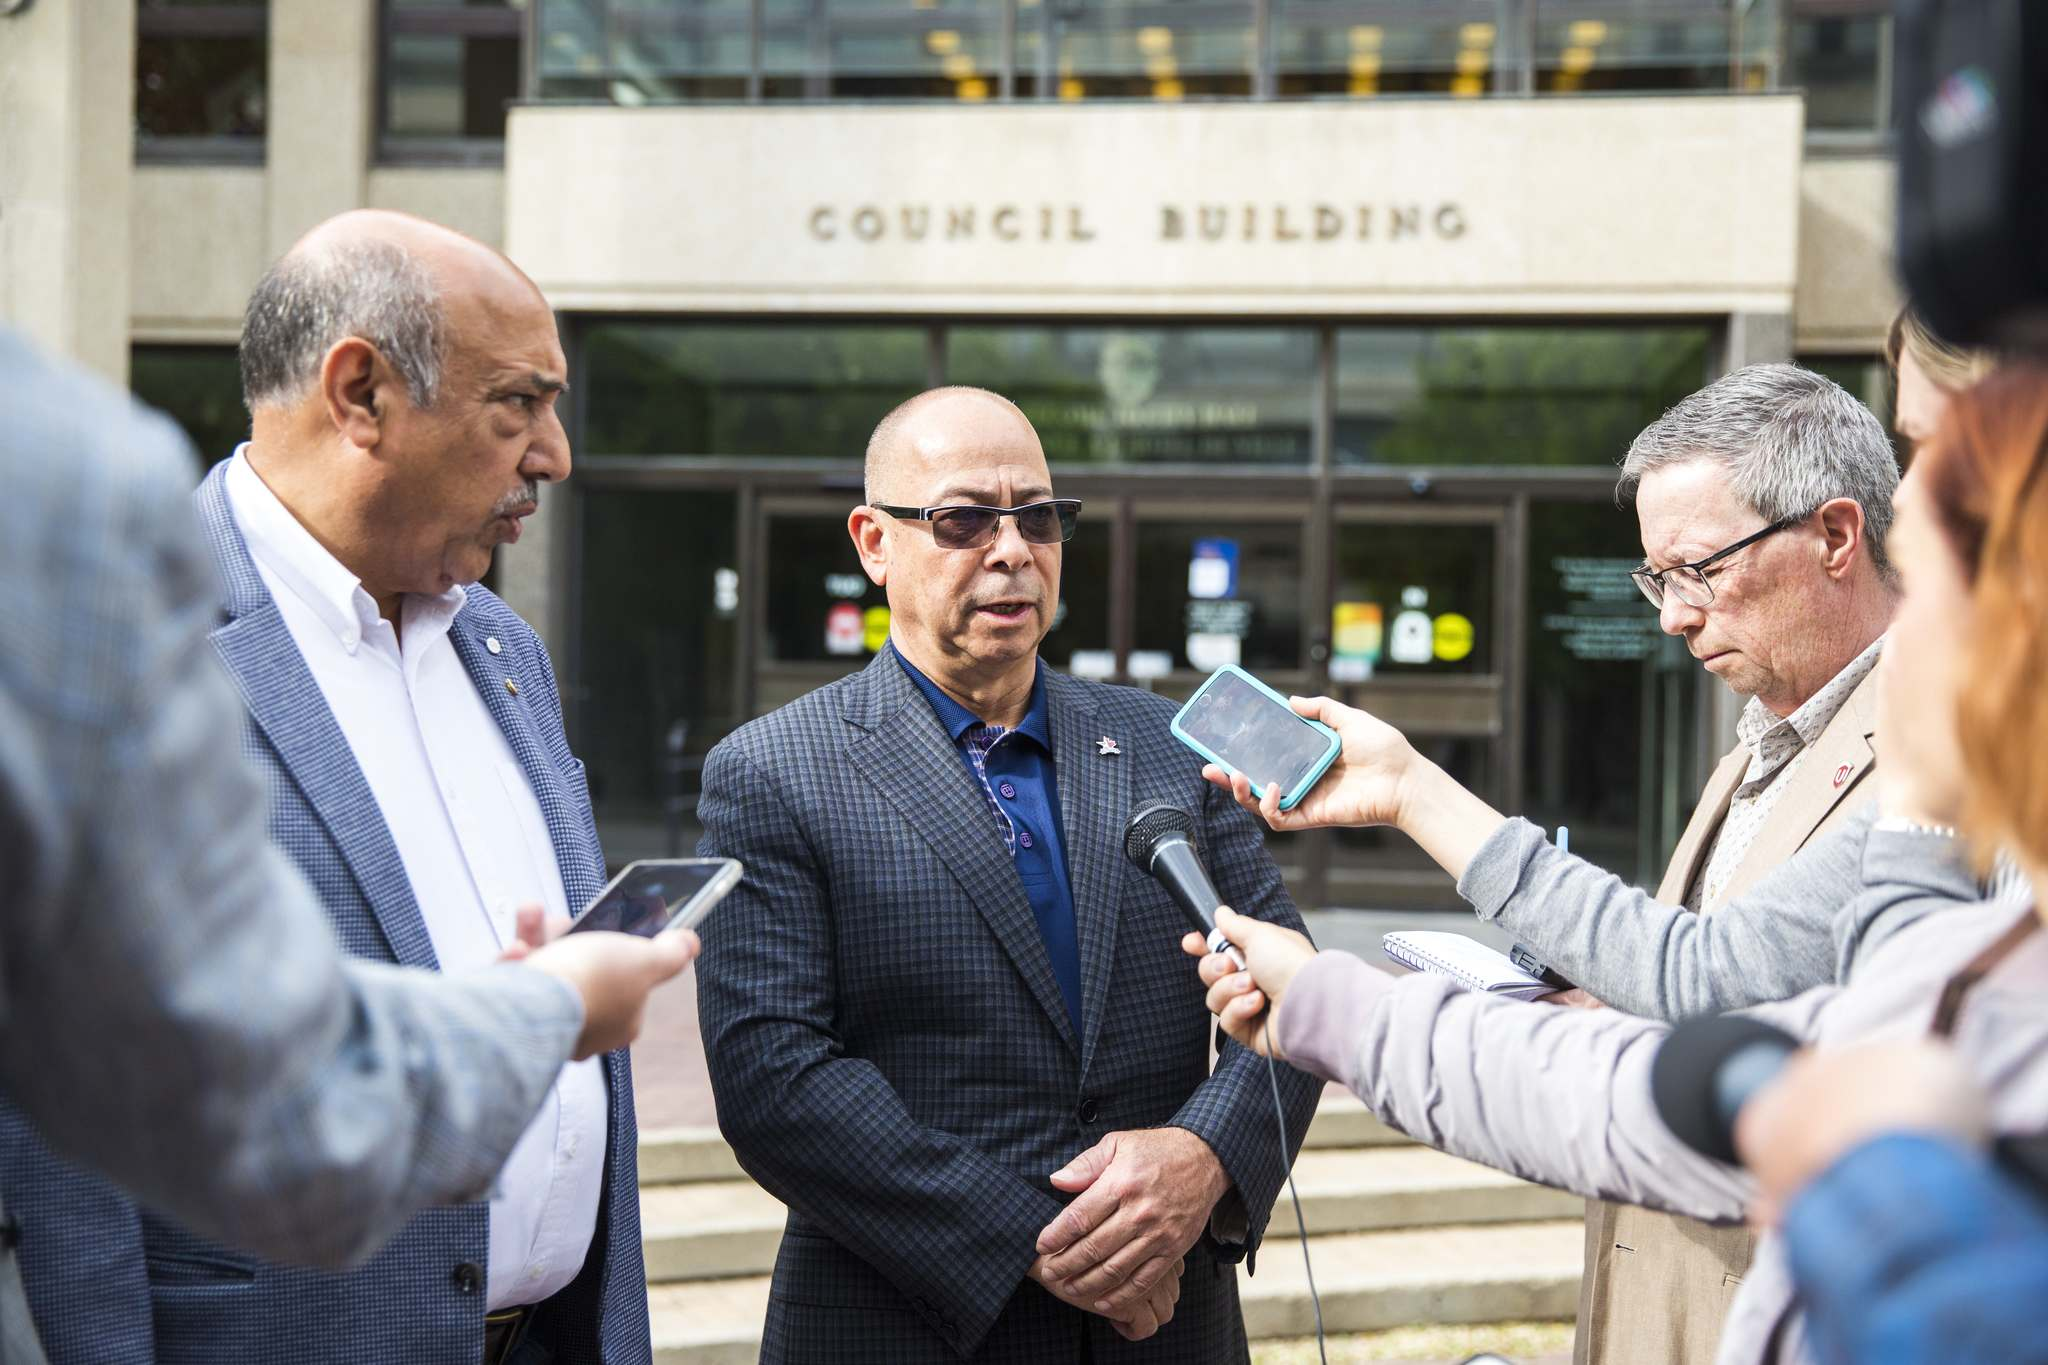 MIKAELA MACKENZIE / WINNIPEG FREE PRESS</p><p>John Costa, ATU International president, centre, speaks to the media with Aleem Chaudhary, left, ATU 1505 president, outside of City Hall in Winnipeg on Tuesday.</p>